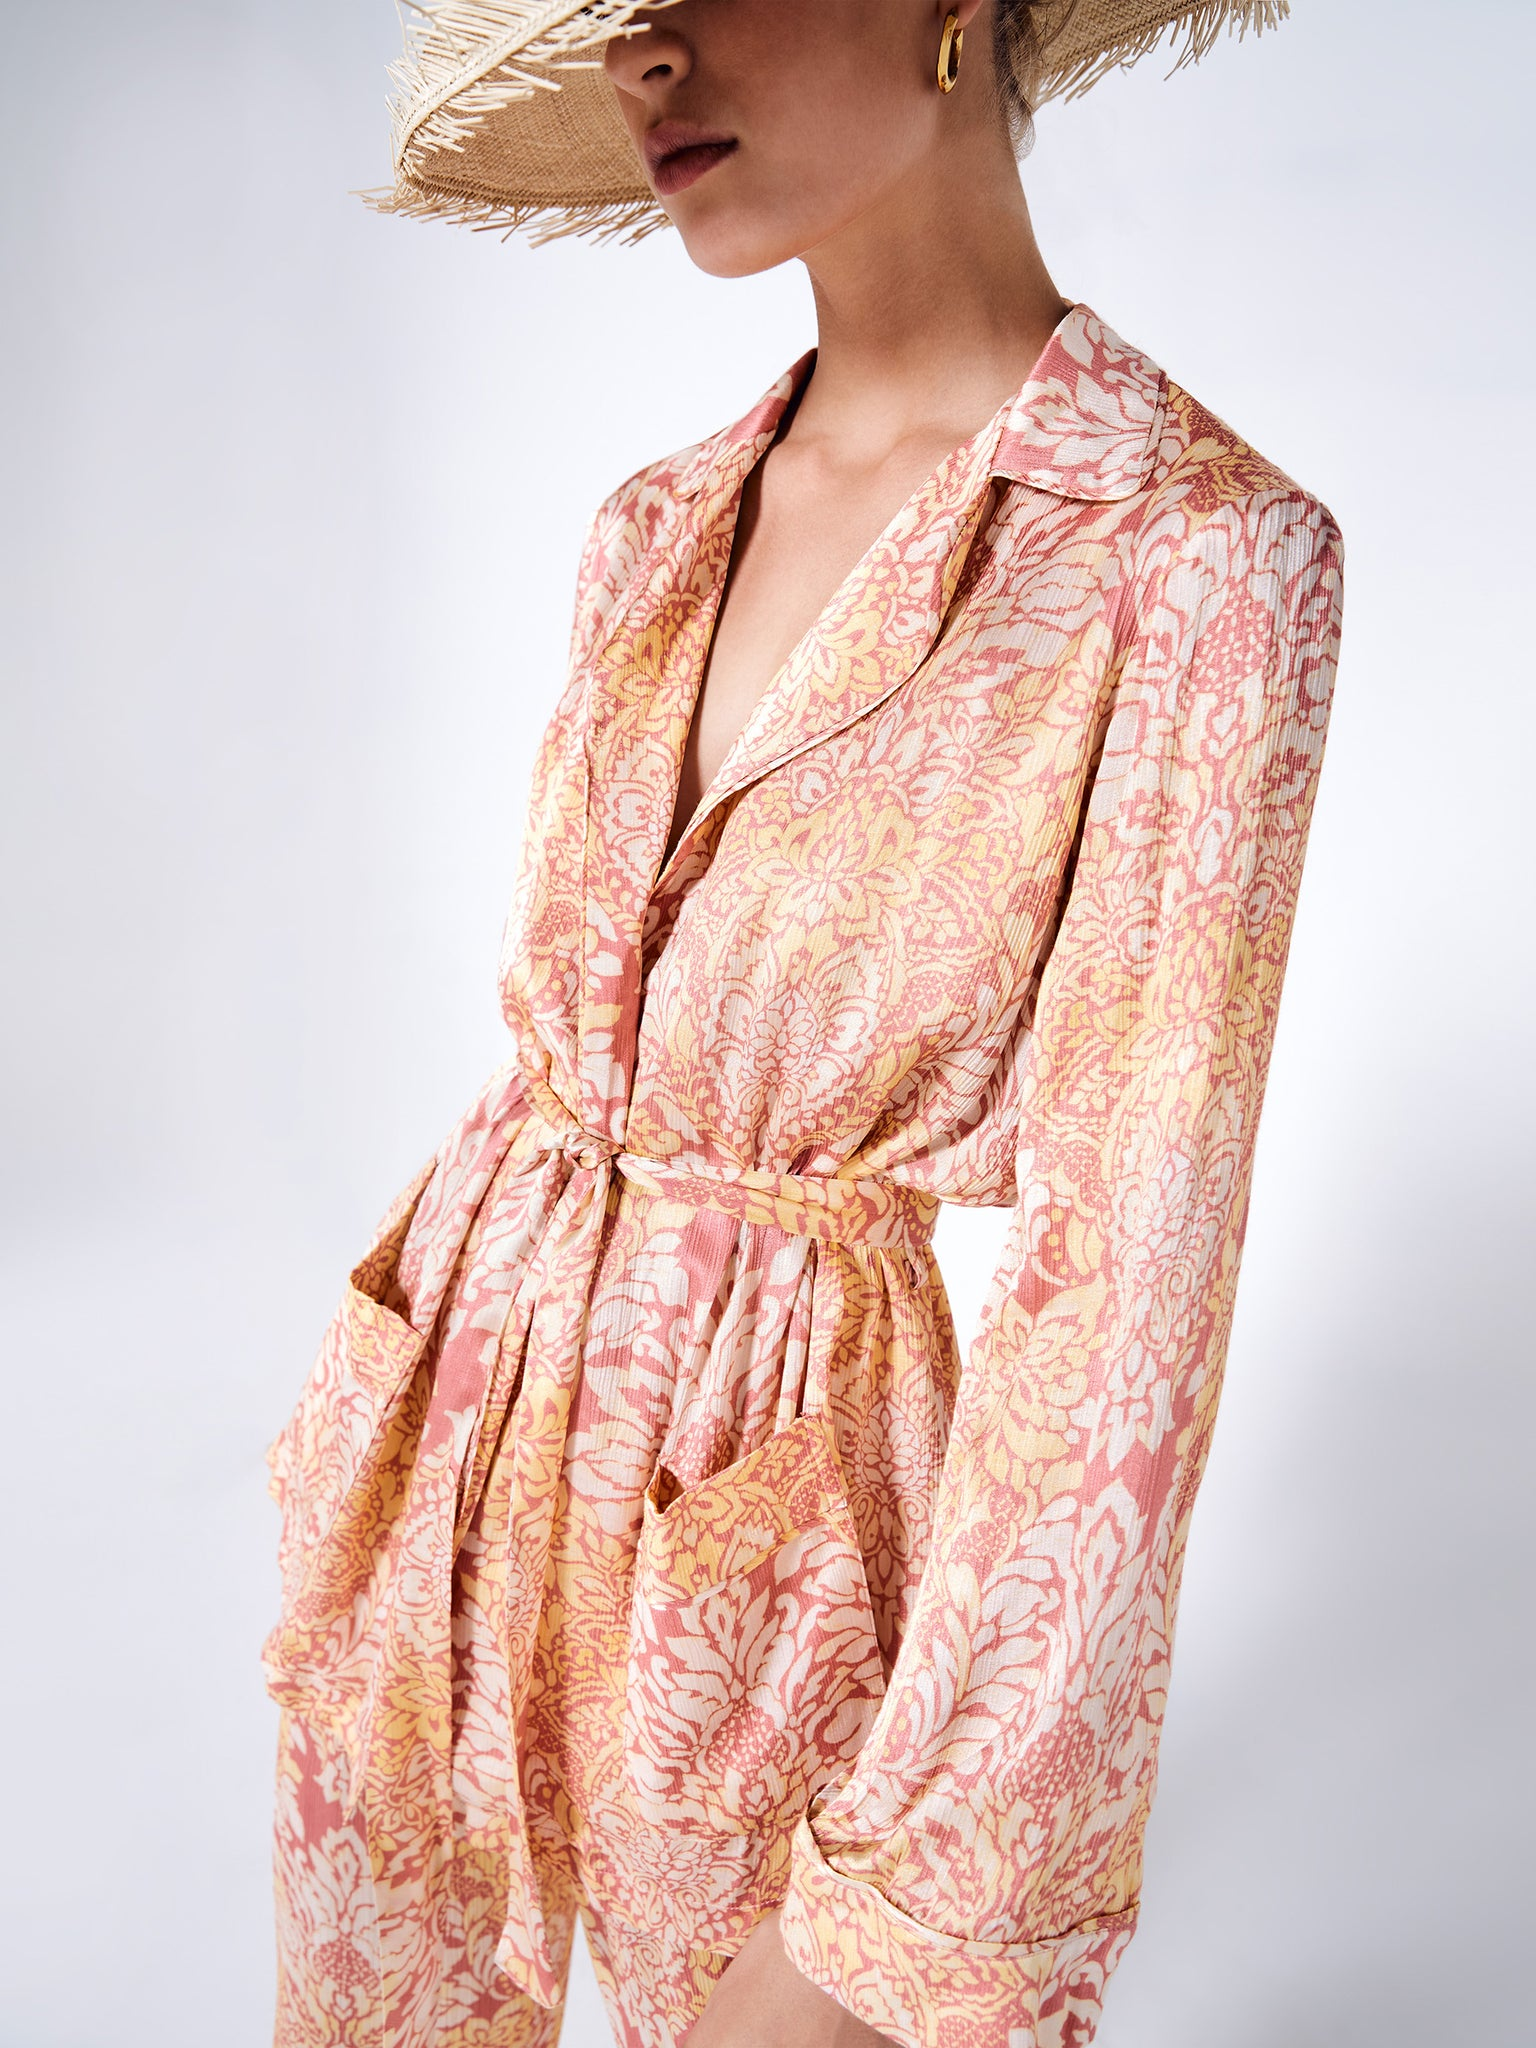 Alexis Aureta Robe in pink and orange floral - Rear View